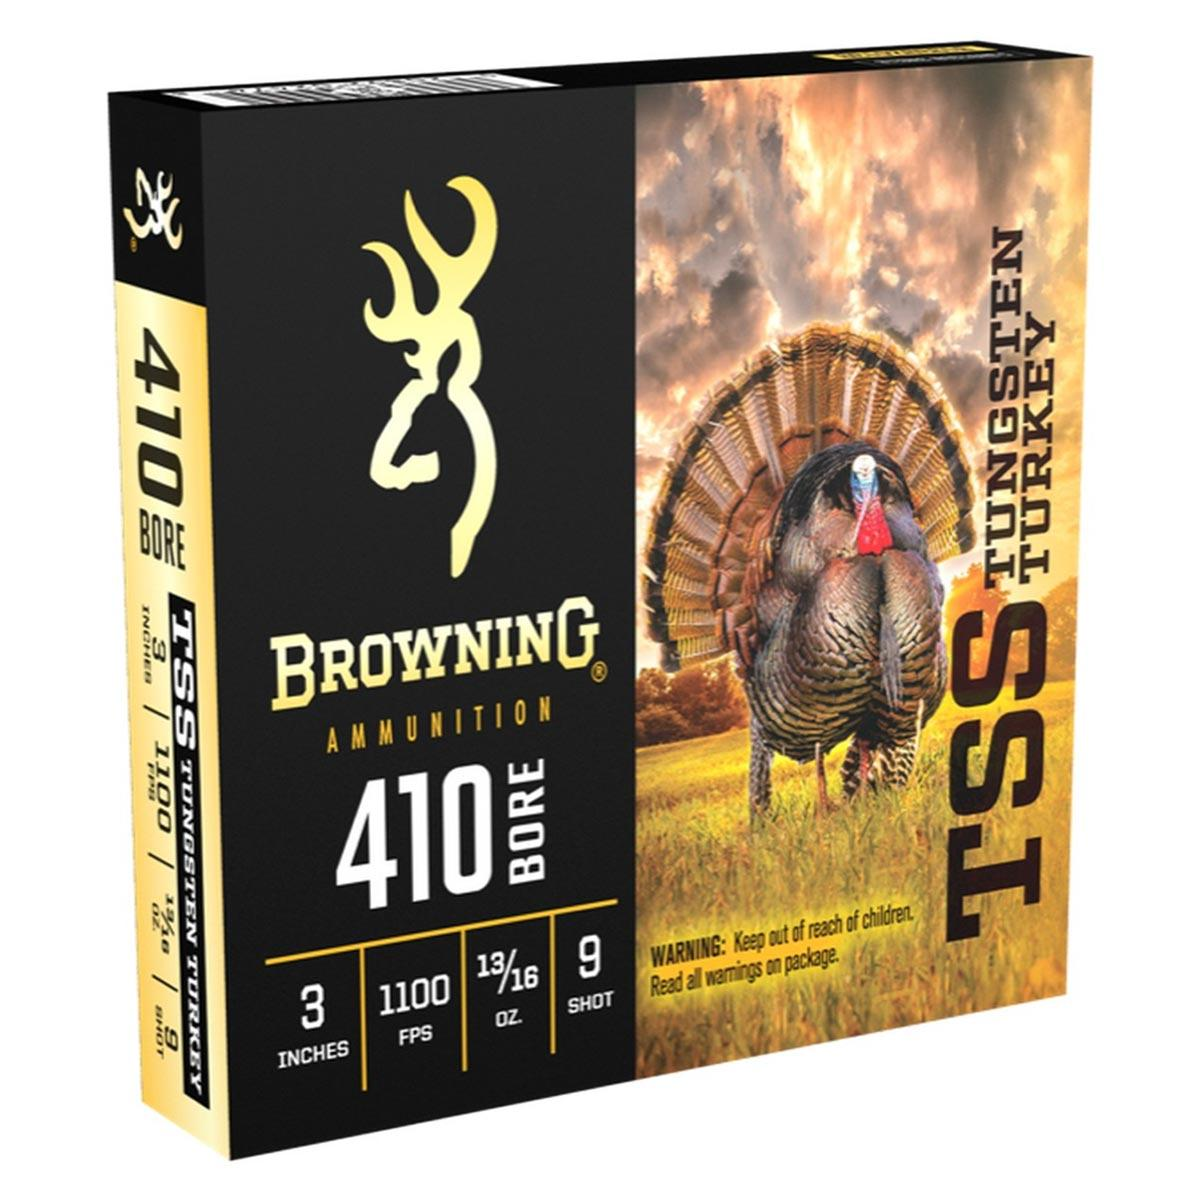 "Browning TSS Tungsten Turkey Loads, 410 Gauge 3"" 13/16OZ 1100FPS, Shot Size 9"